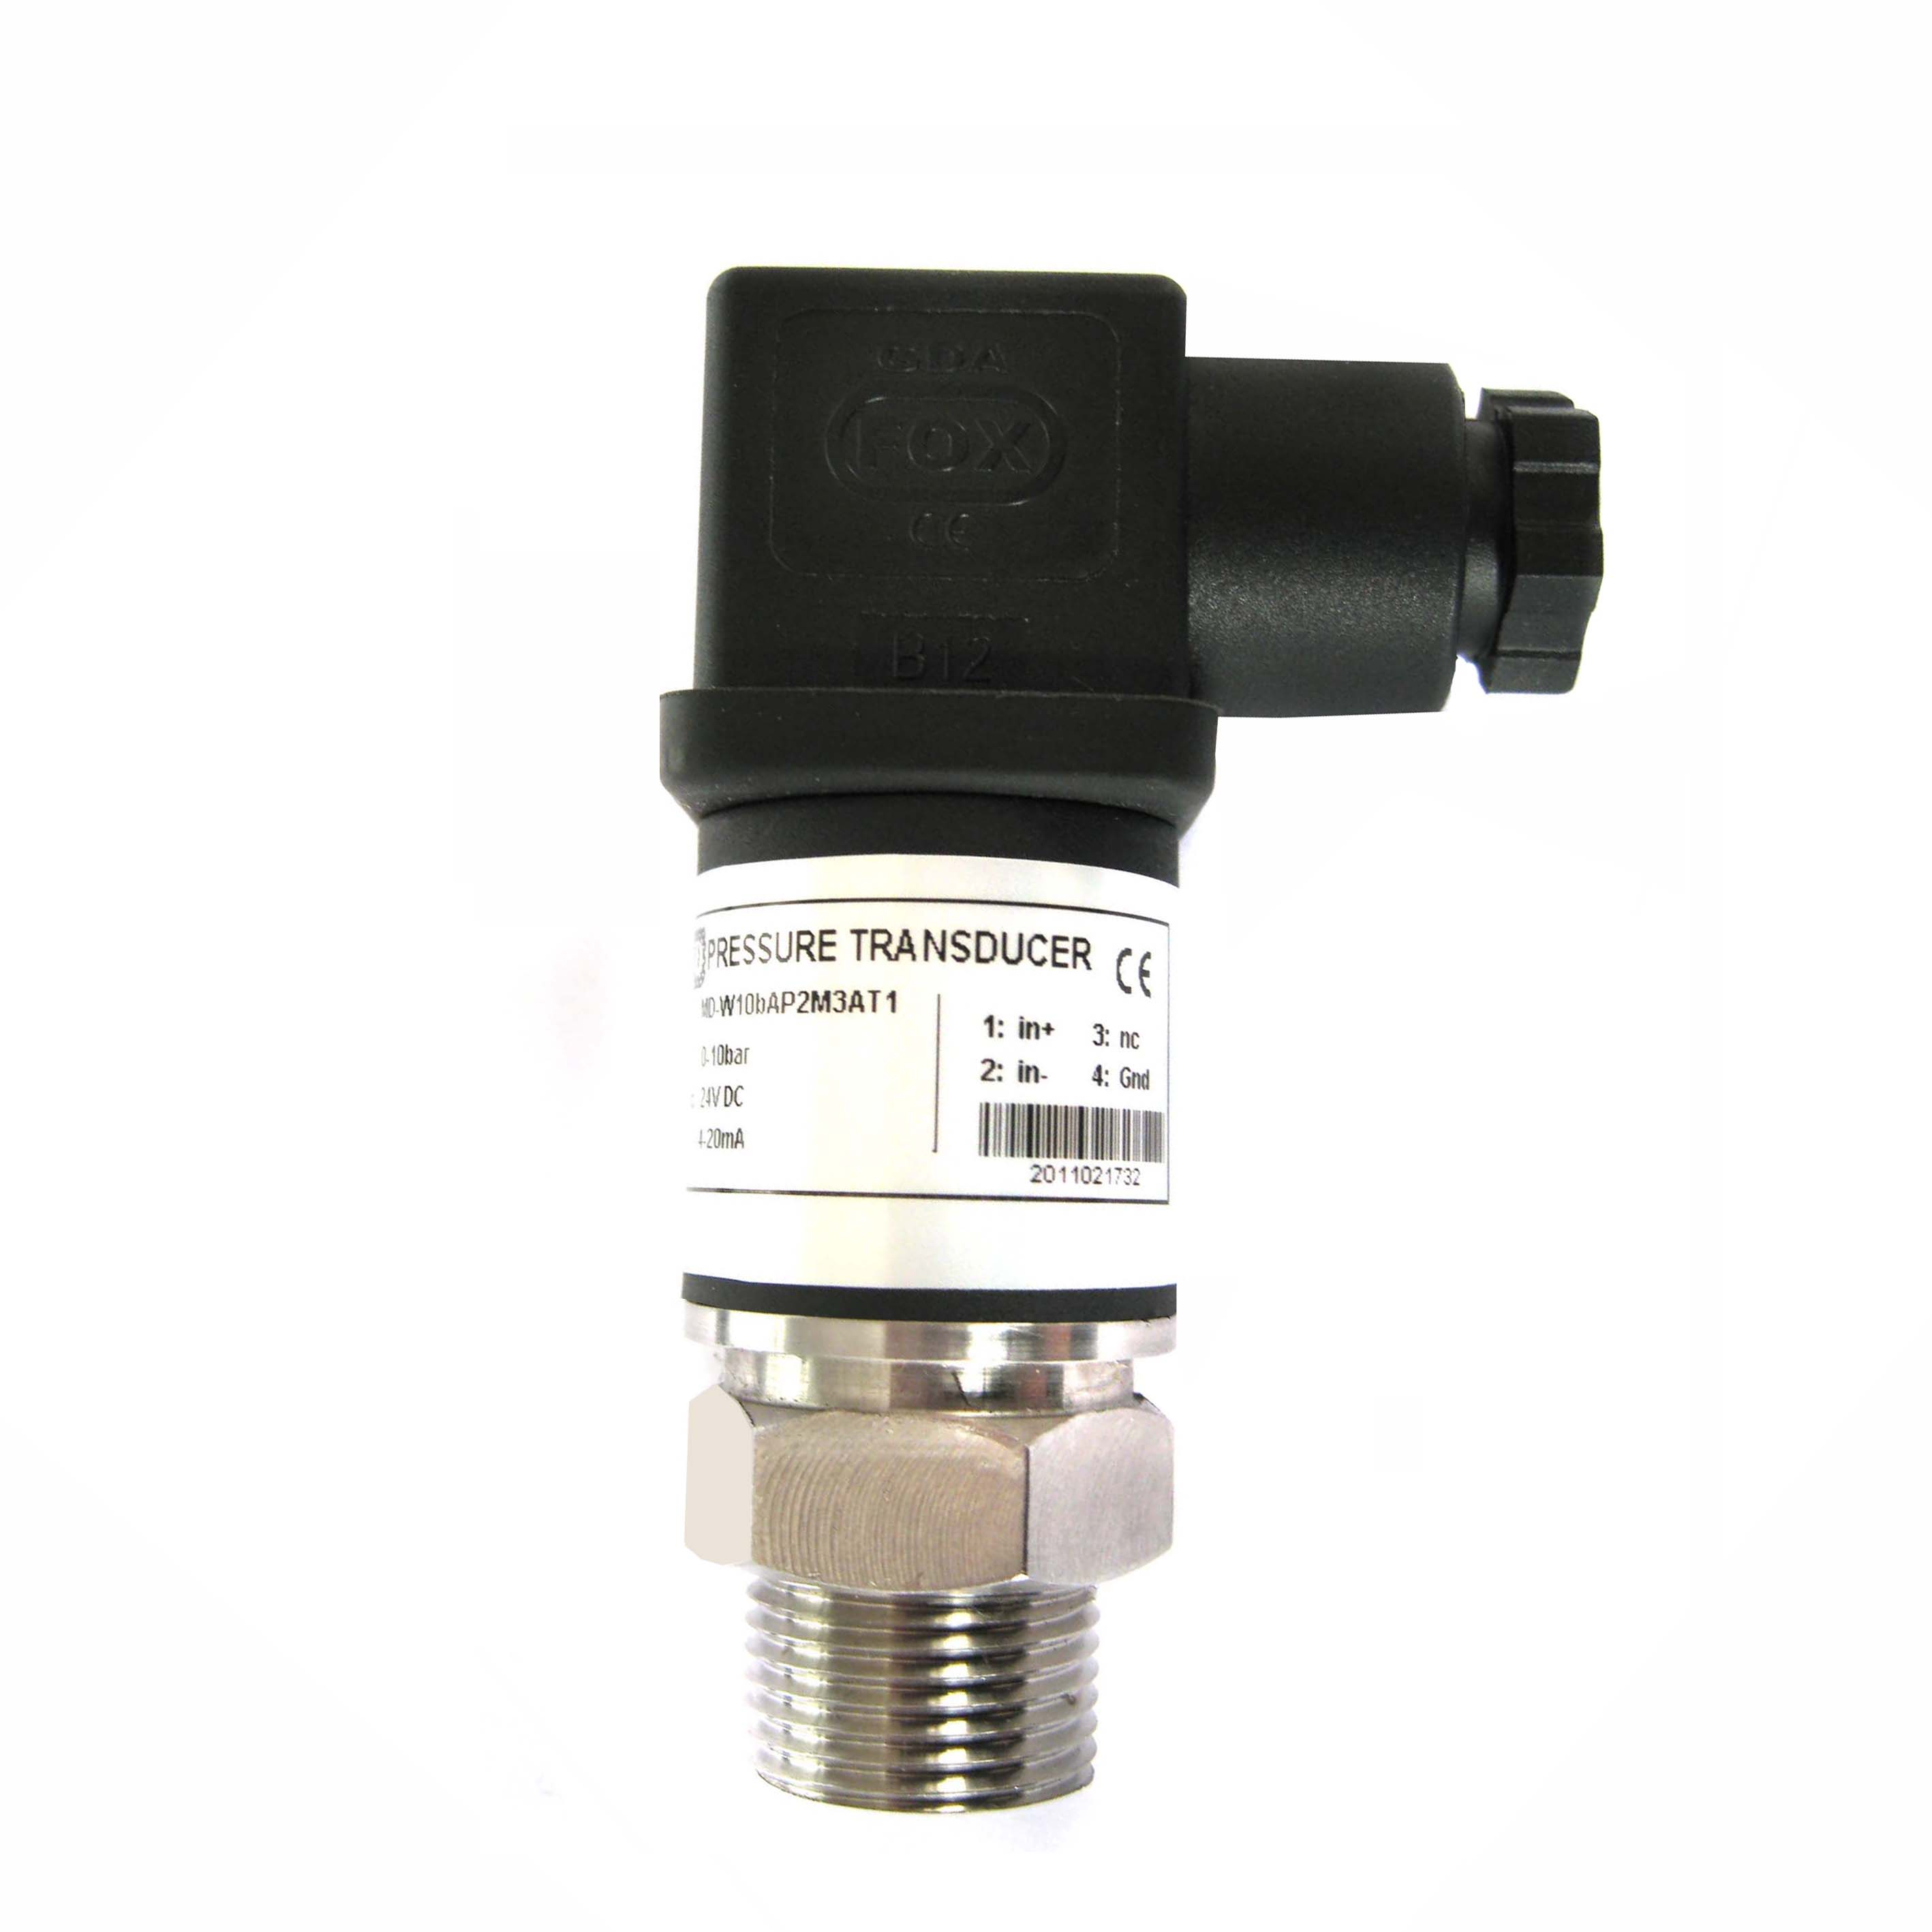 Md-w constant pressure sensor for water supply